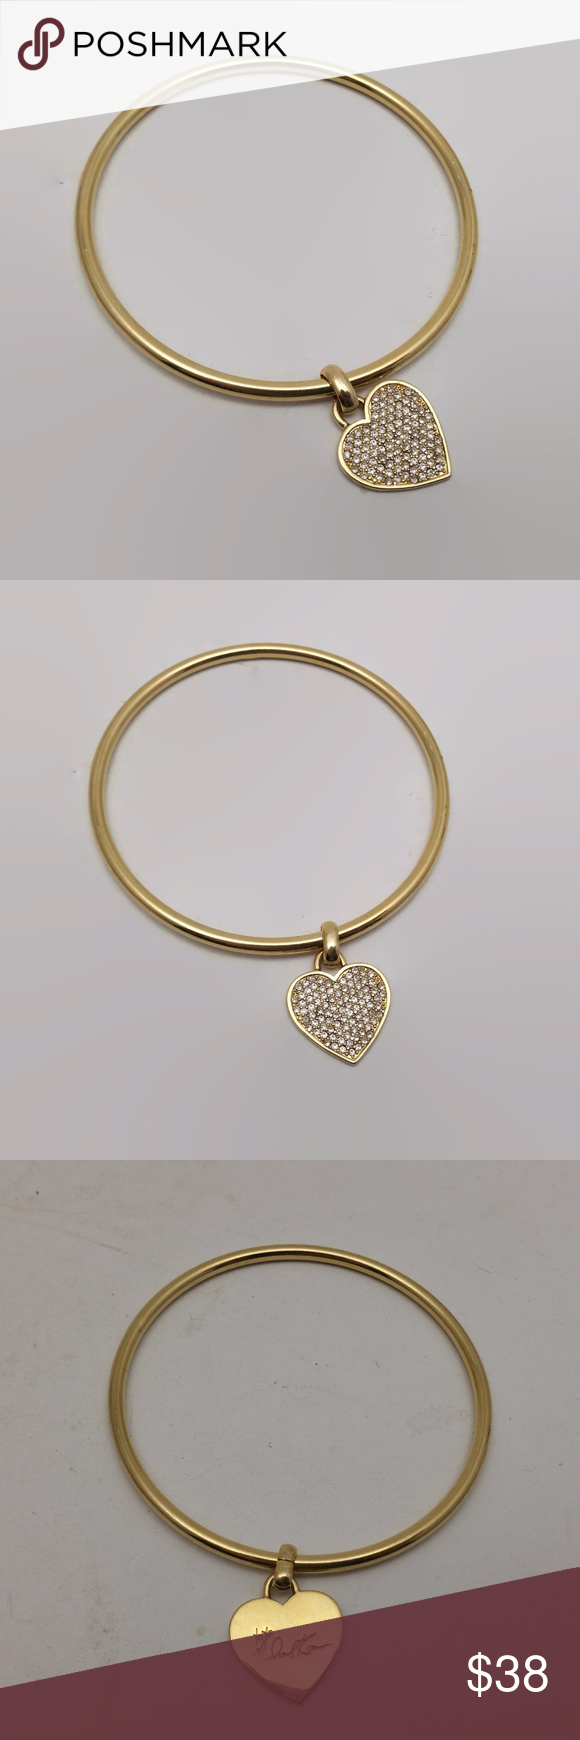 Michael kors pave rhinestone heart bangle bracelet michael kors